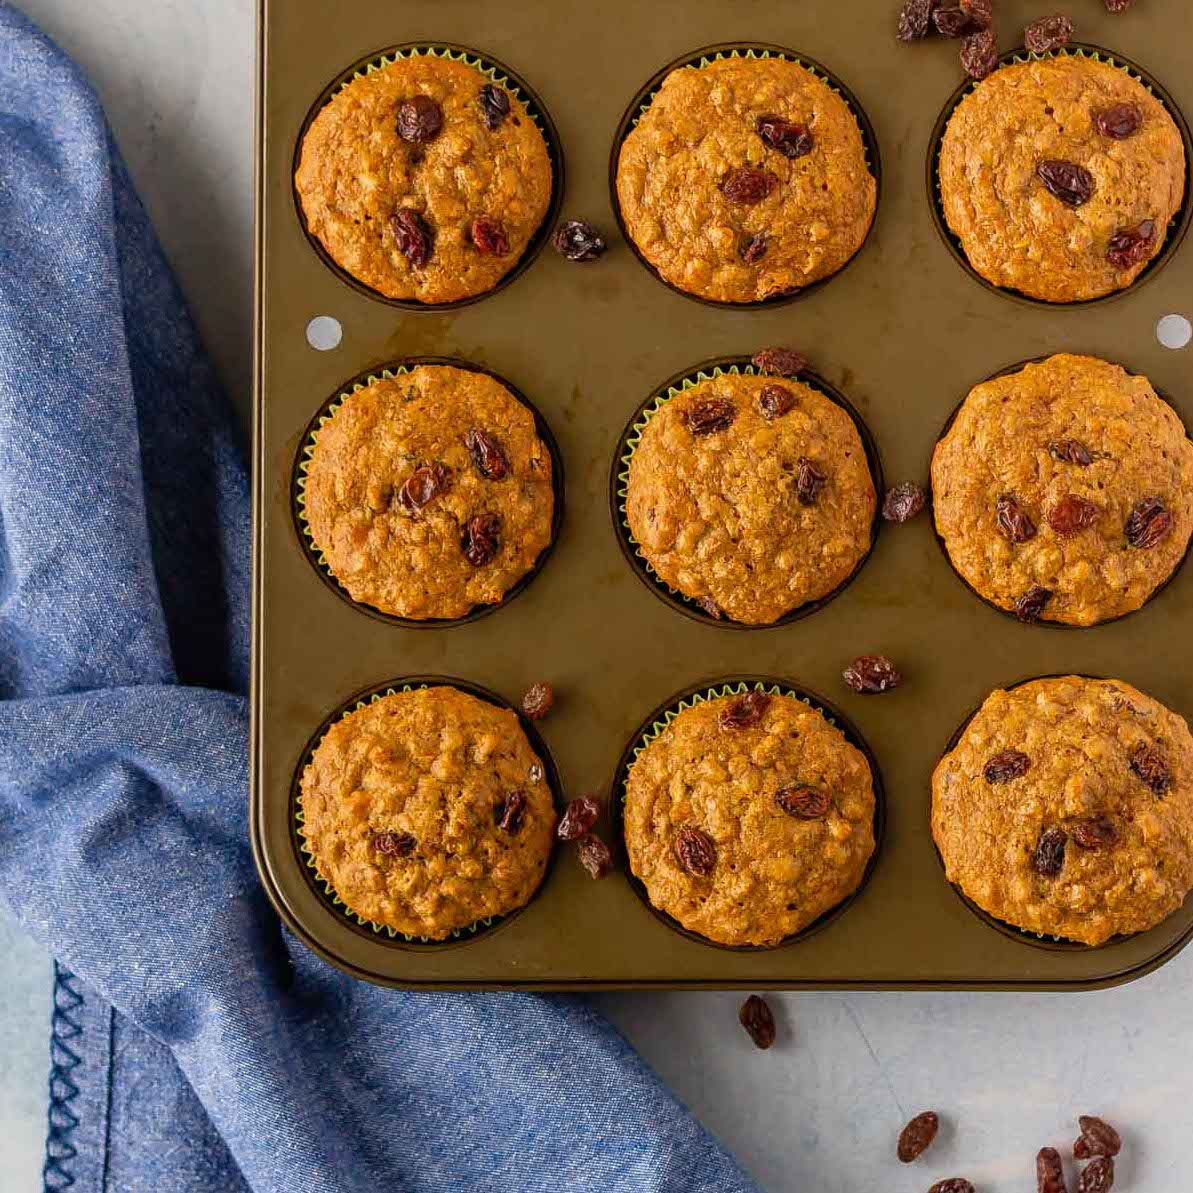 These healthy refrigerator raisin bran muffins, filled with naturally sun-dried California Raisins, are amazing! The batter can be kept in the fridge for a month, so you can enjoy fresh baked muffins in the morning with no effort at all! #sponsored bake-eat-repeat.com/refrigerator-r…